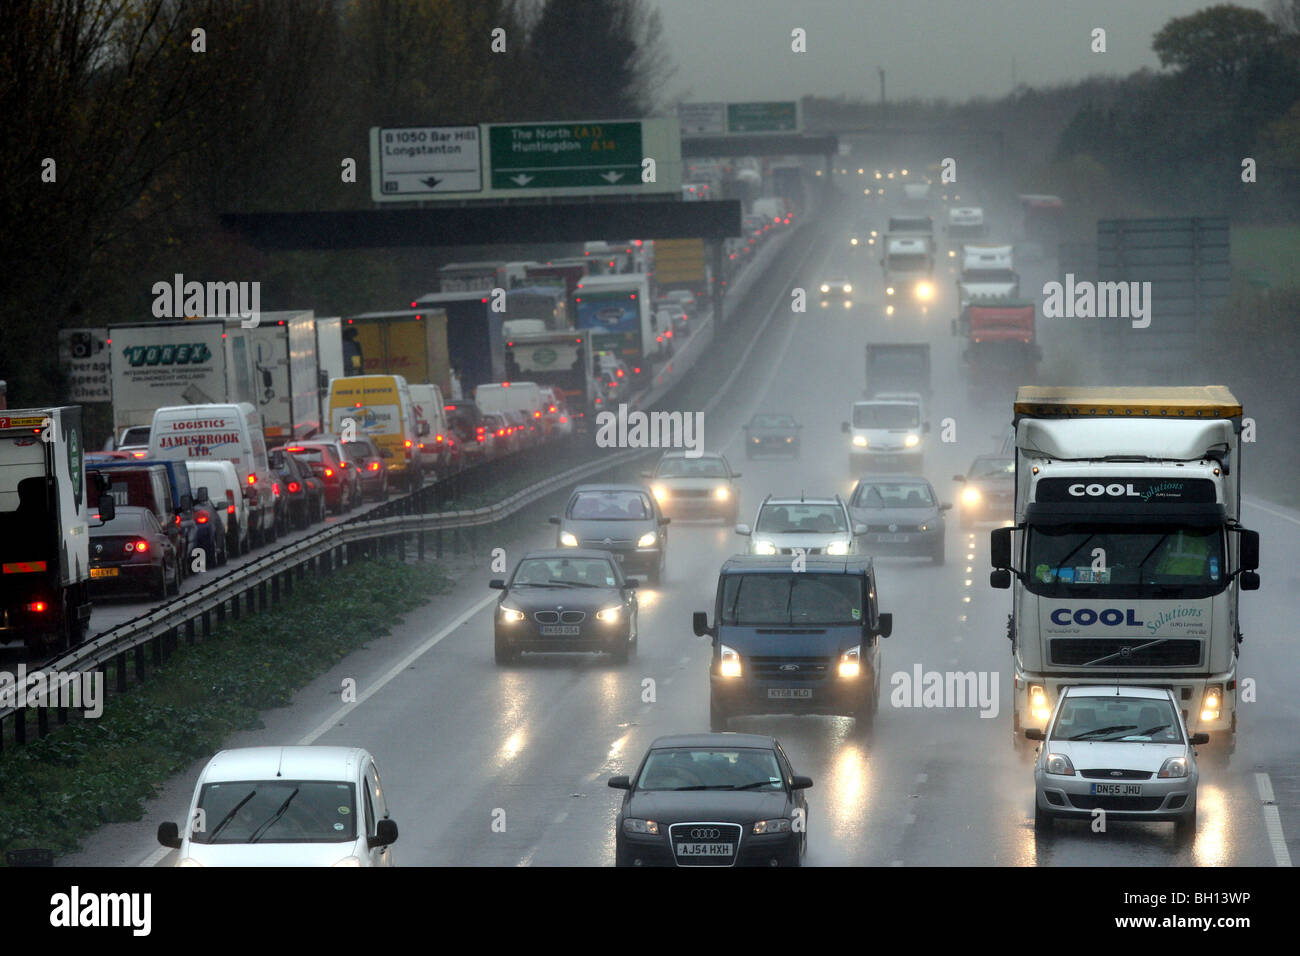 CARS ON MOTORWAY IN THE RAIN Stock Photo